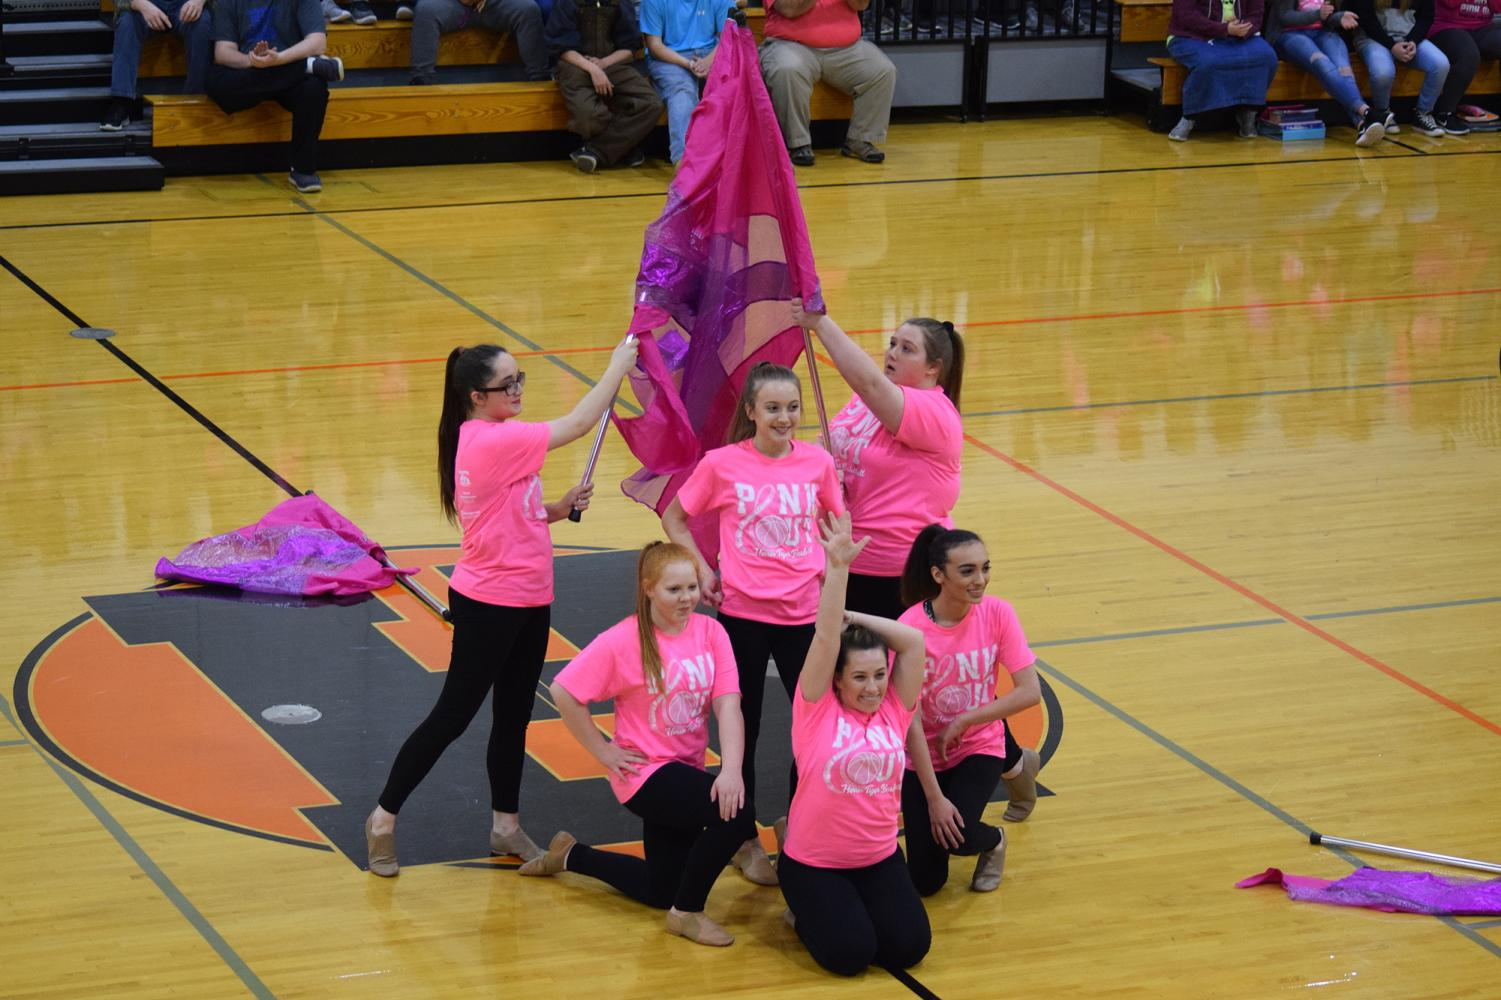 The Herrin High flag team strikes a pose after successfully performing a routine for the Pink Out pep rally.